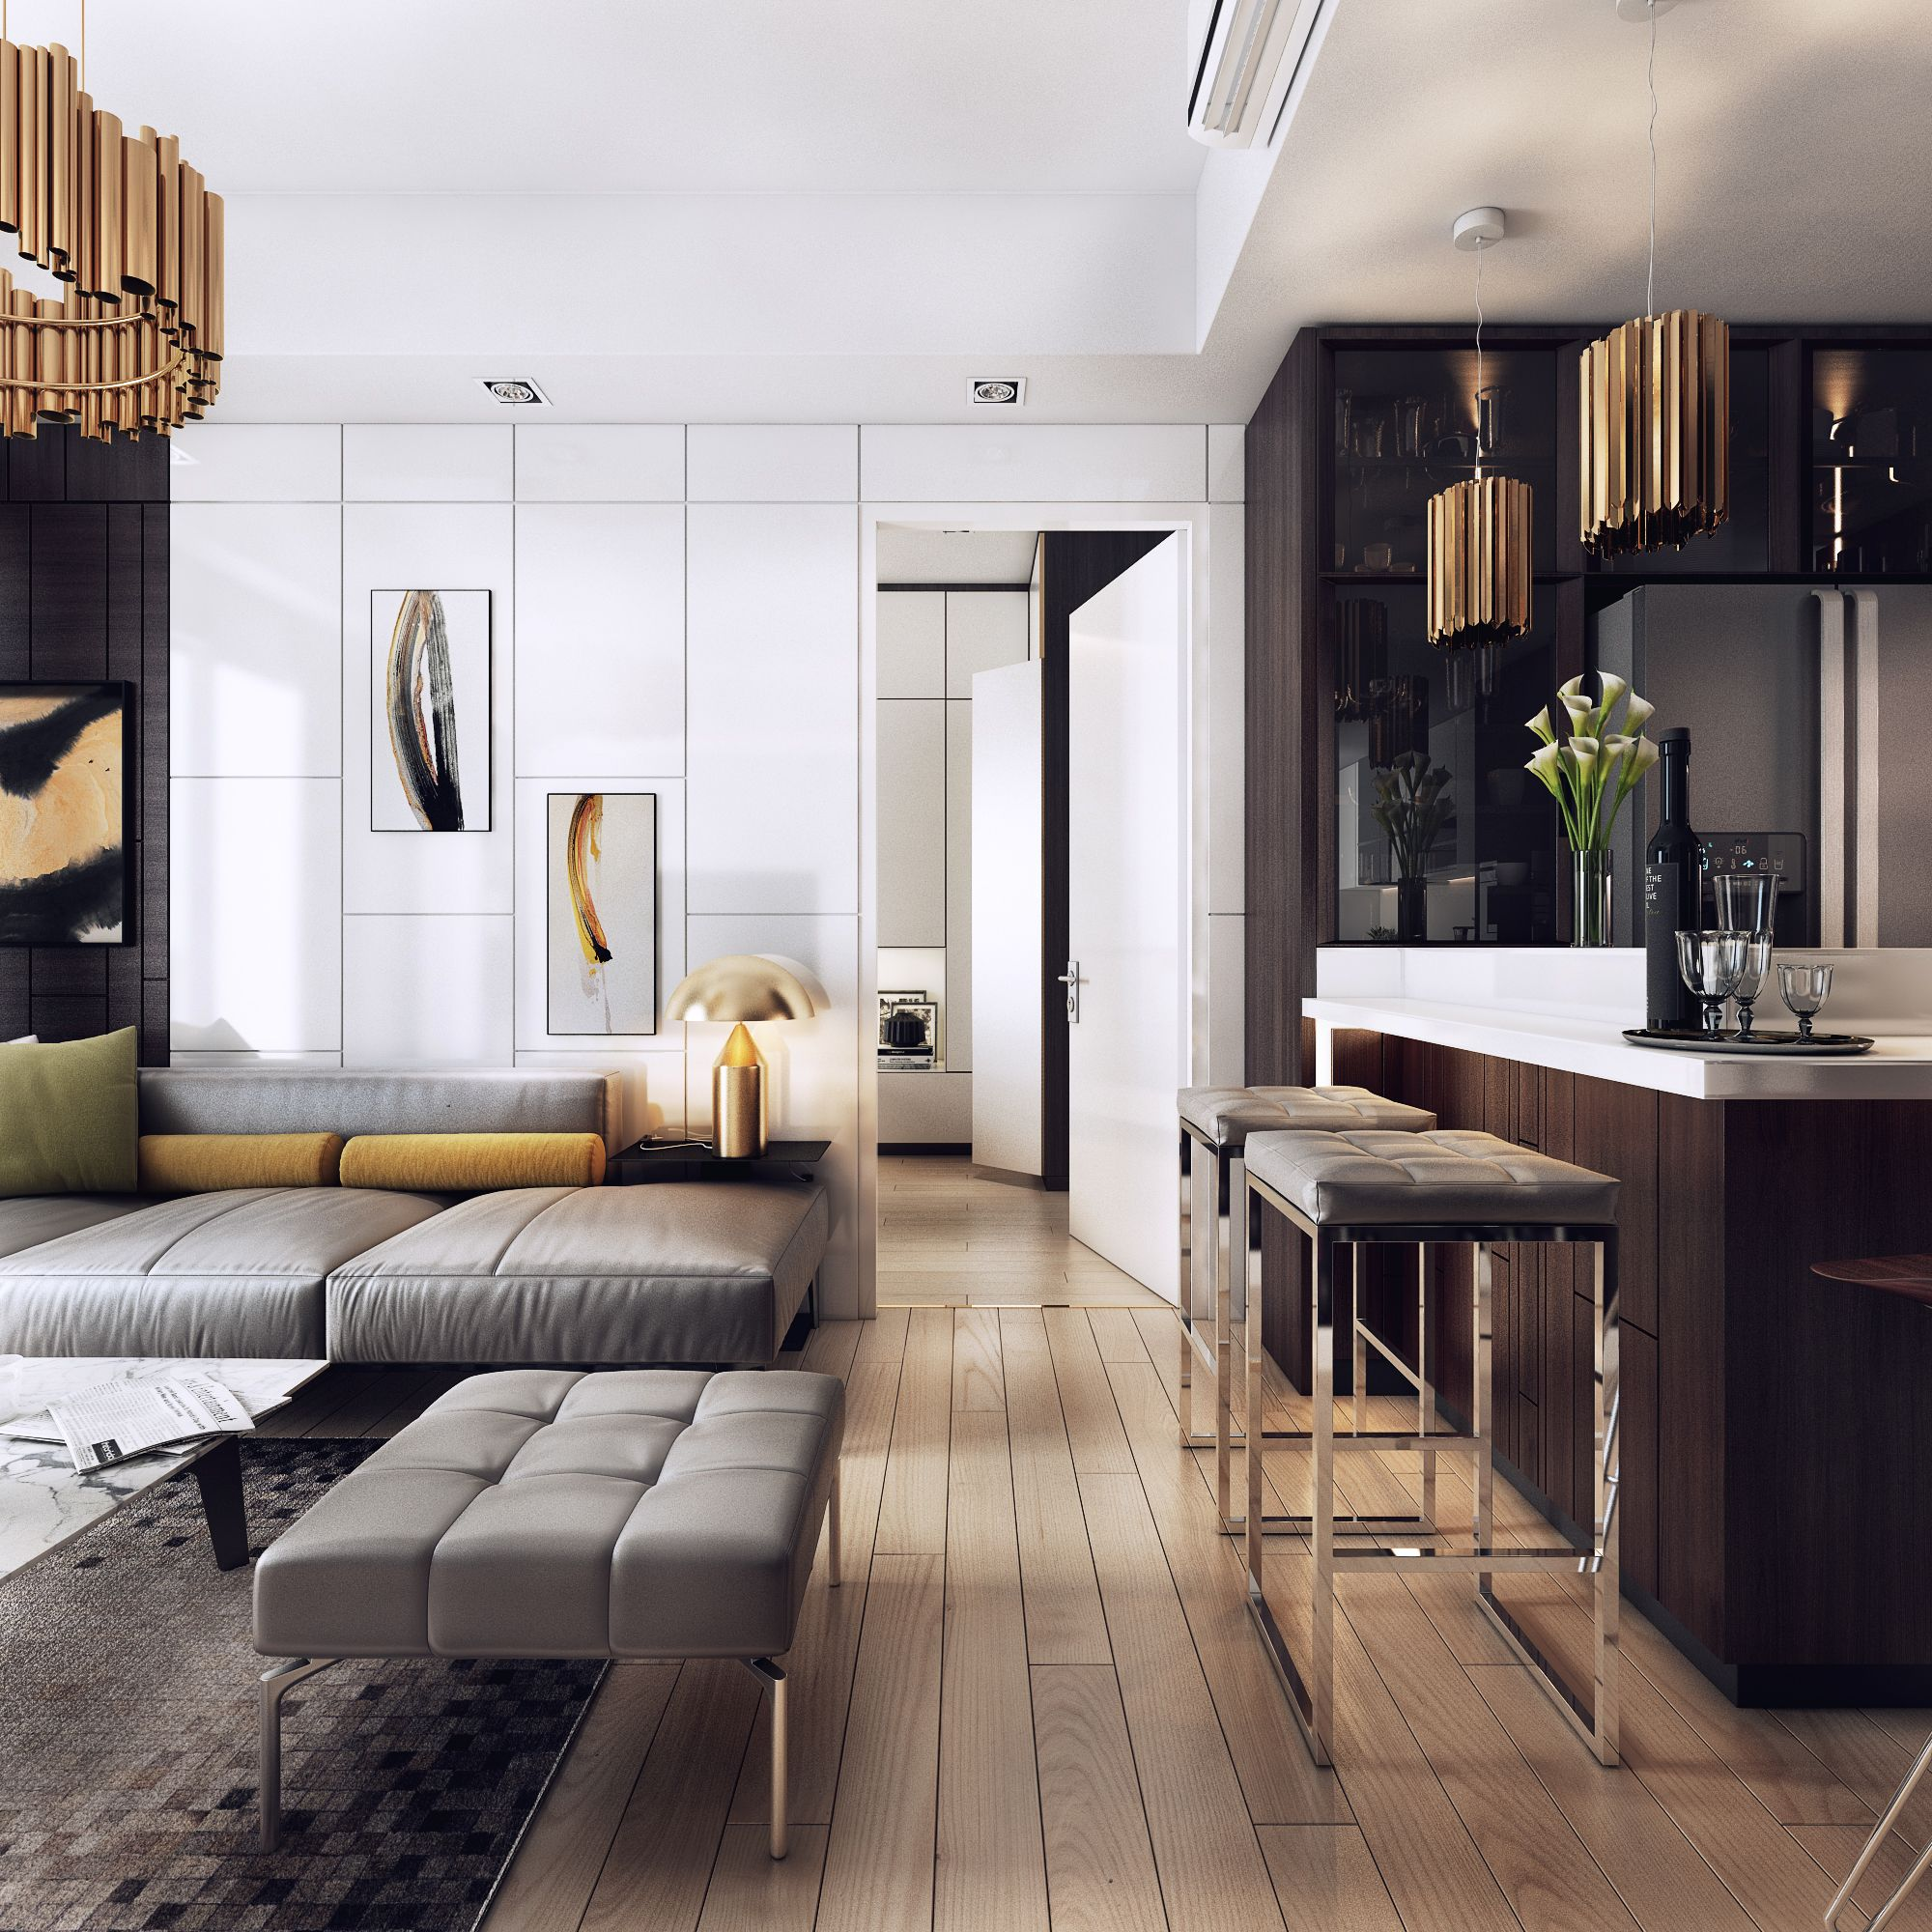 10 Ultra Luxury Apartment Interior Design Ideas | Modern ...